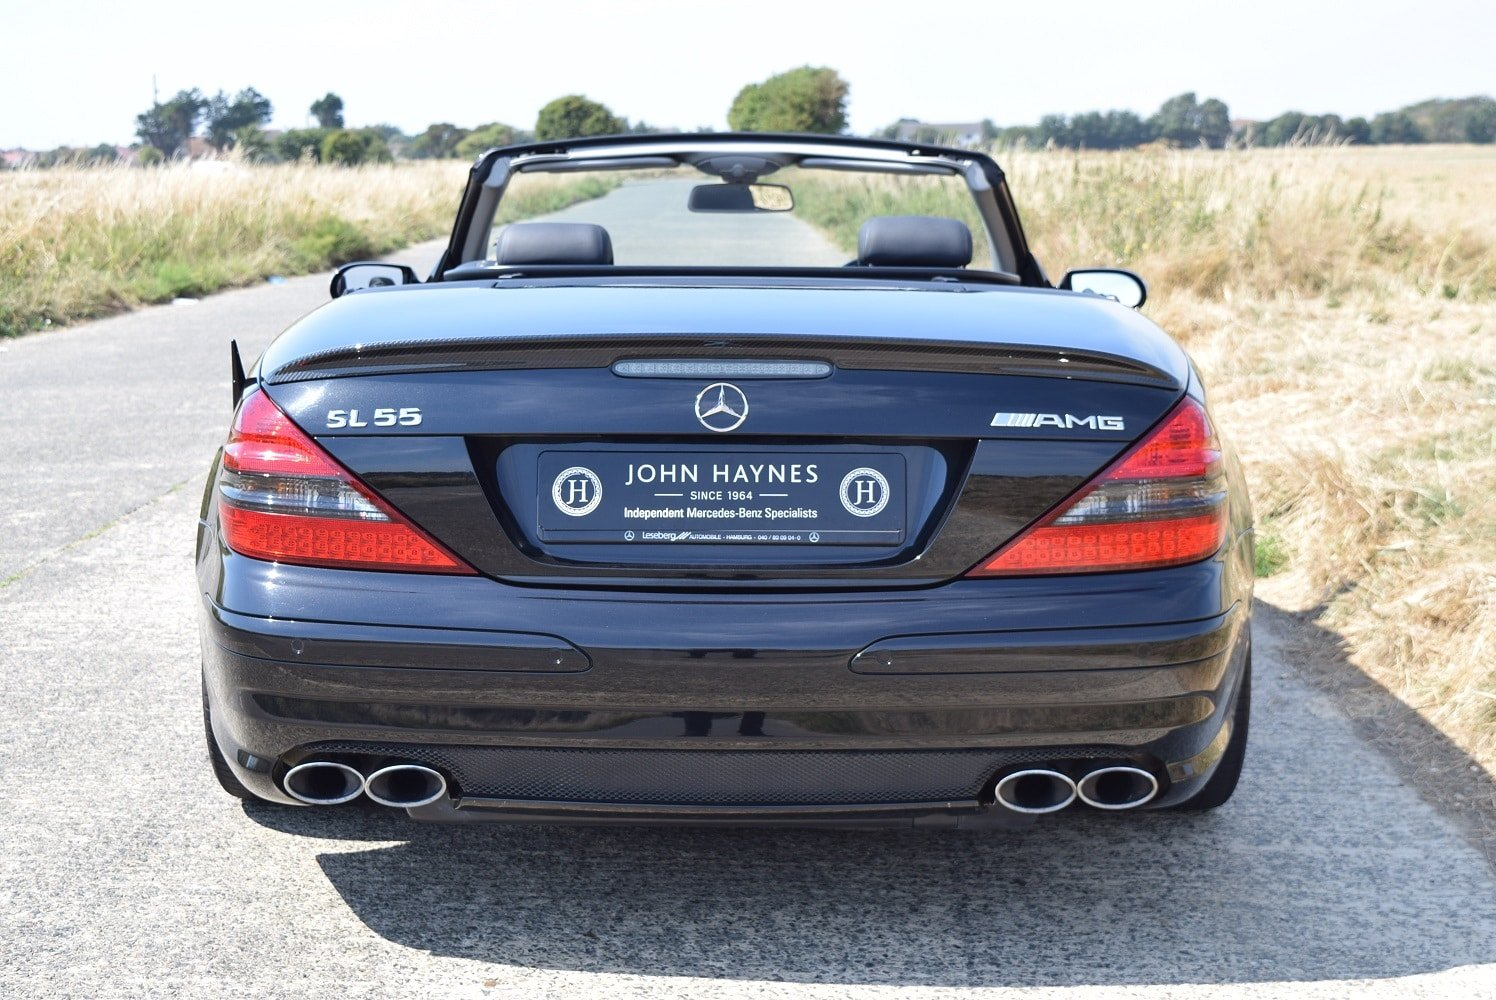 2006 Mercedes Benz SL55 AMG For Sale (picture 2 of 6)